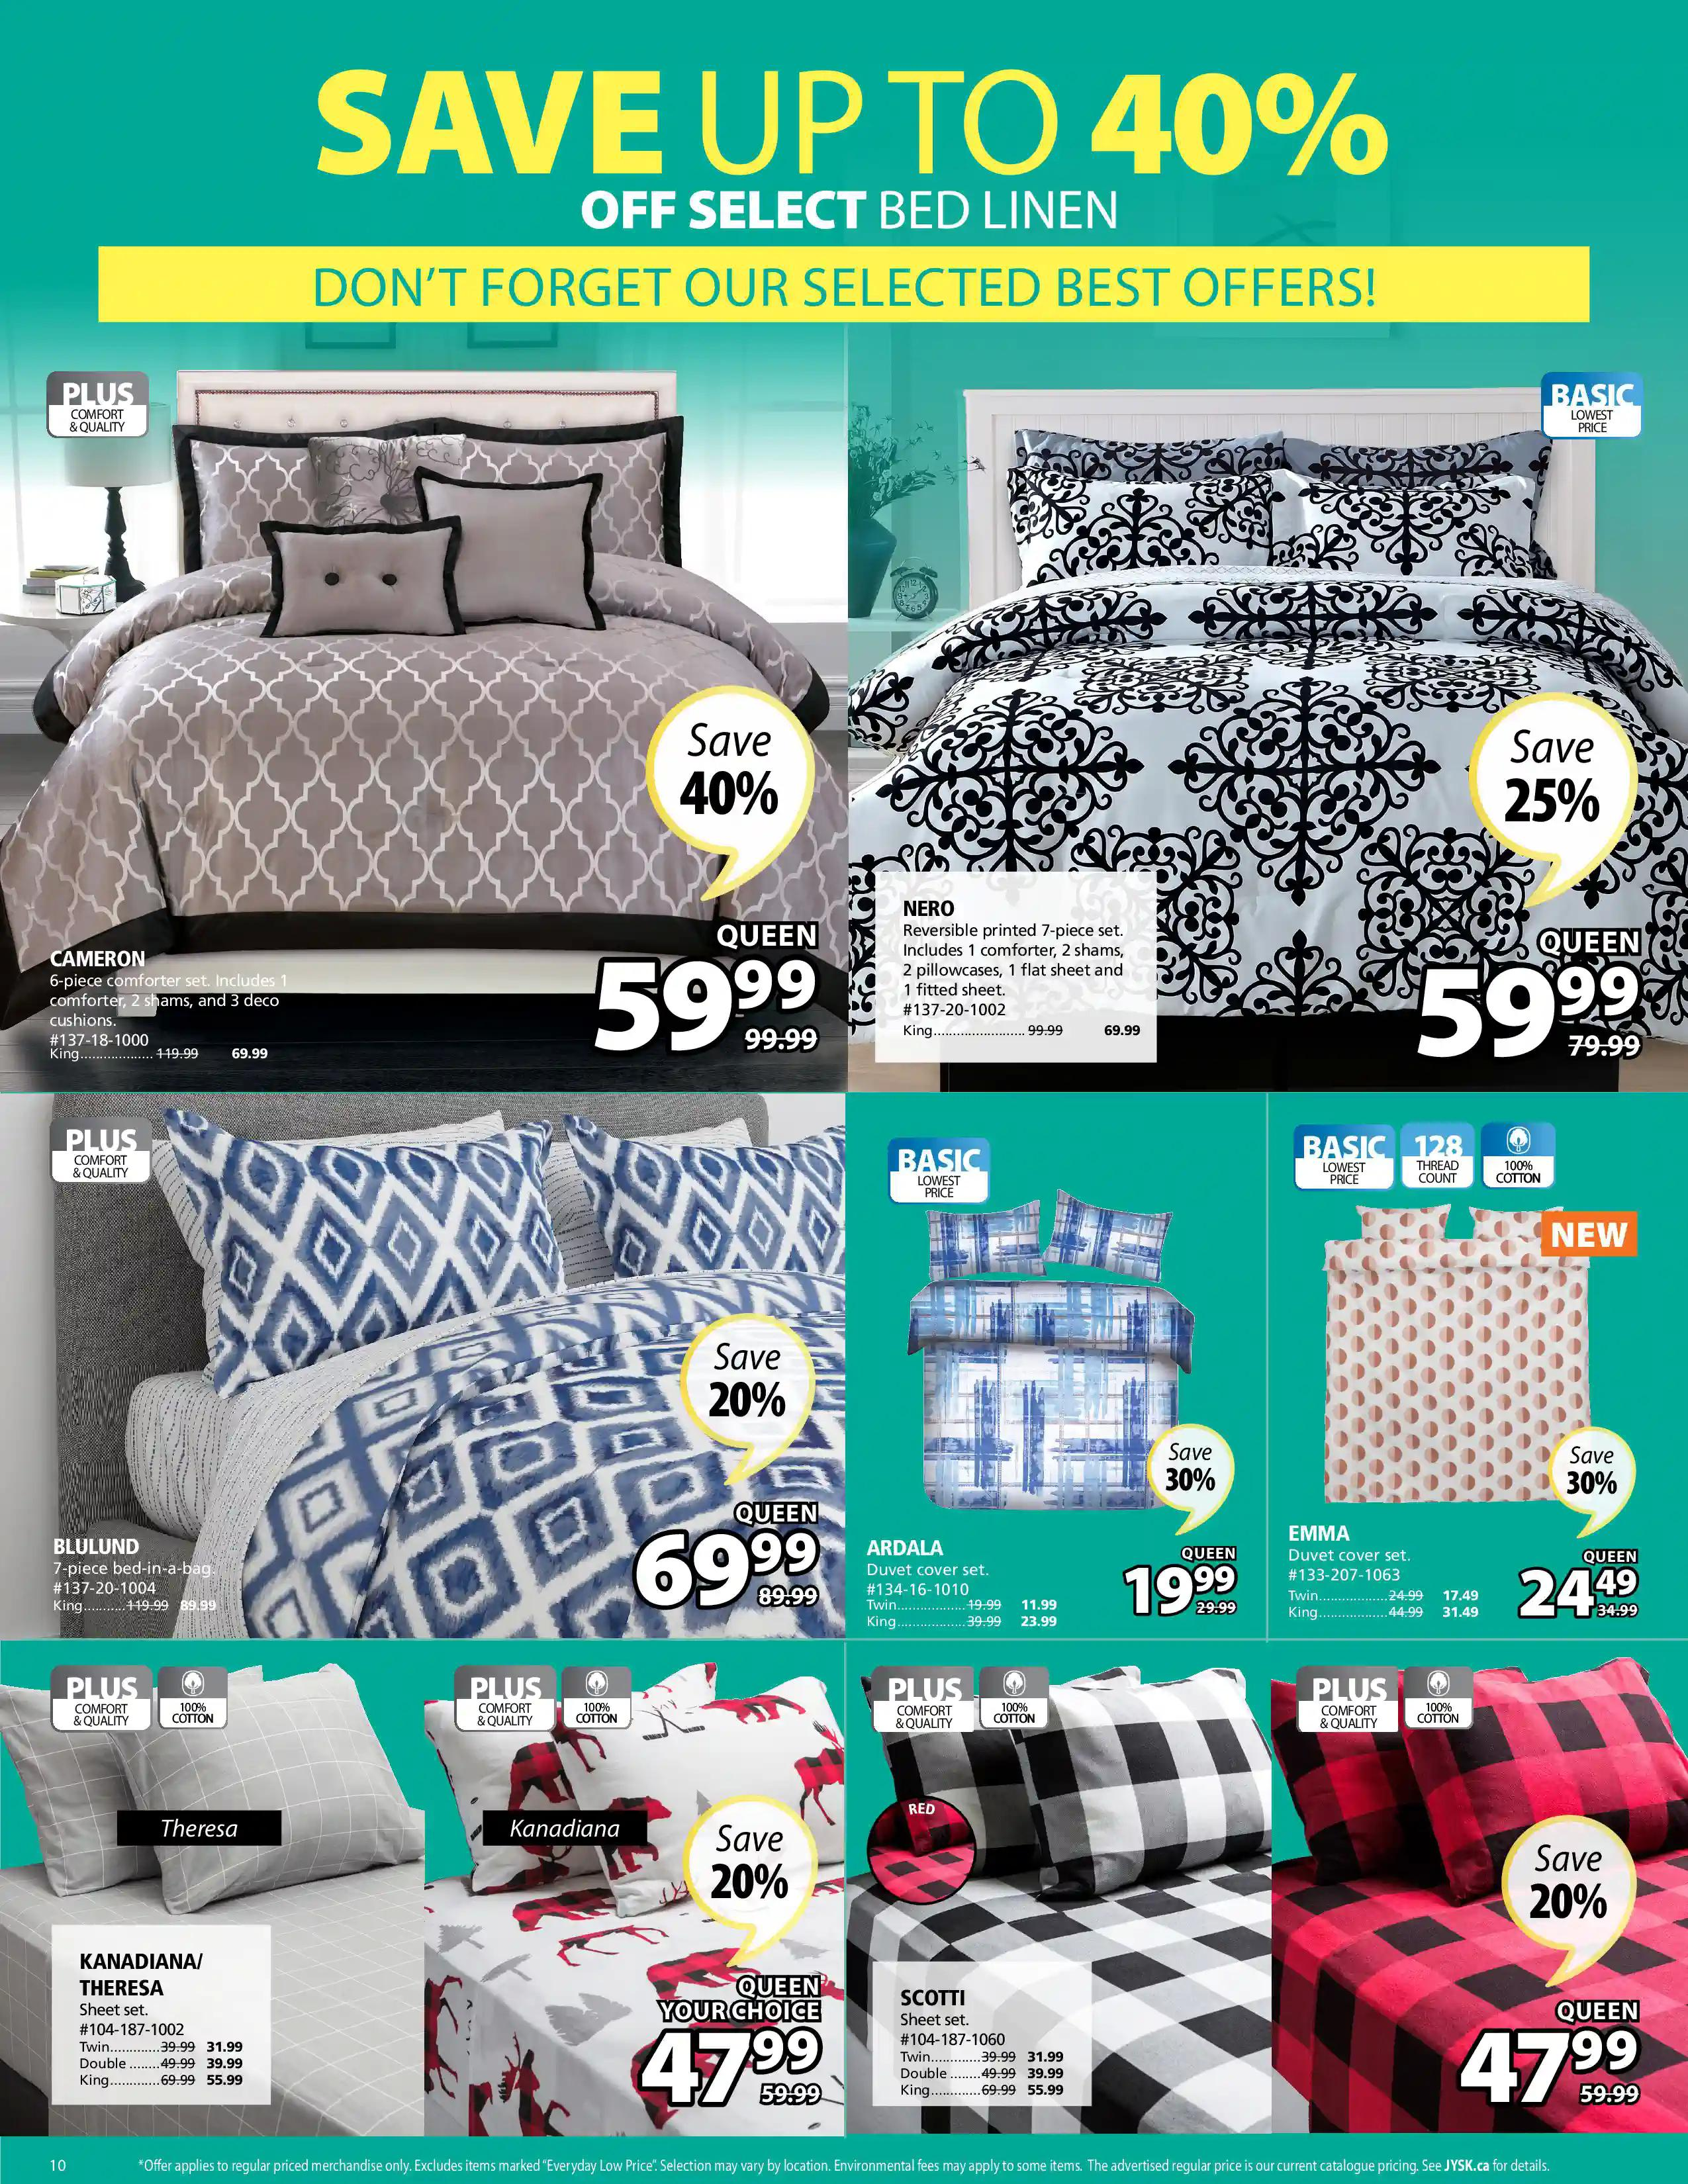 Jysk - Weekly Flyer Specials - Page 10